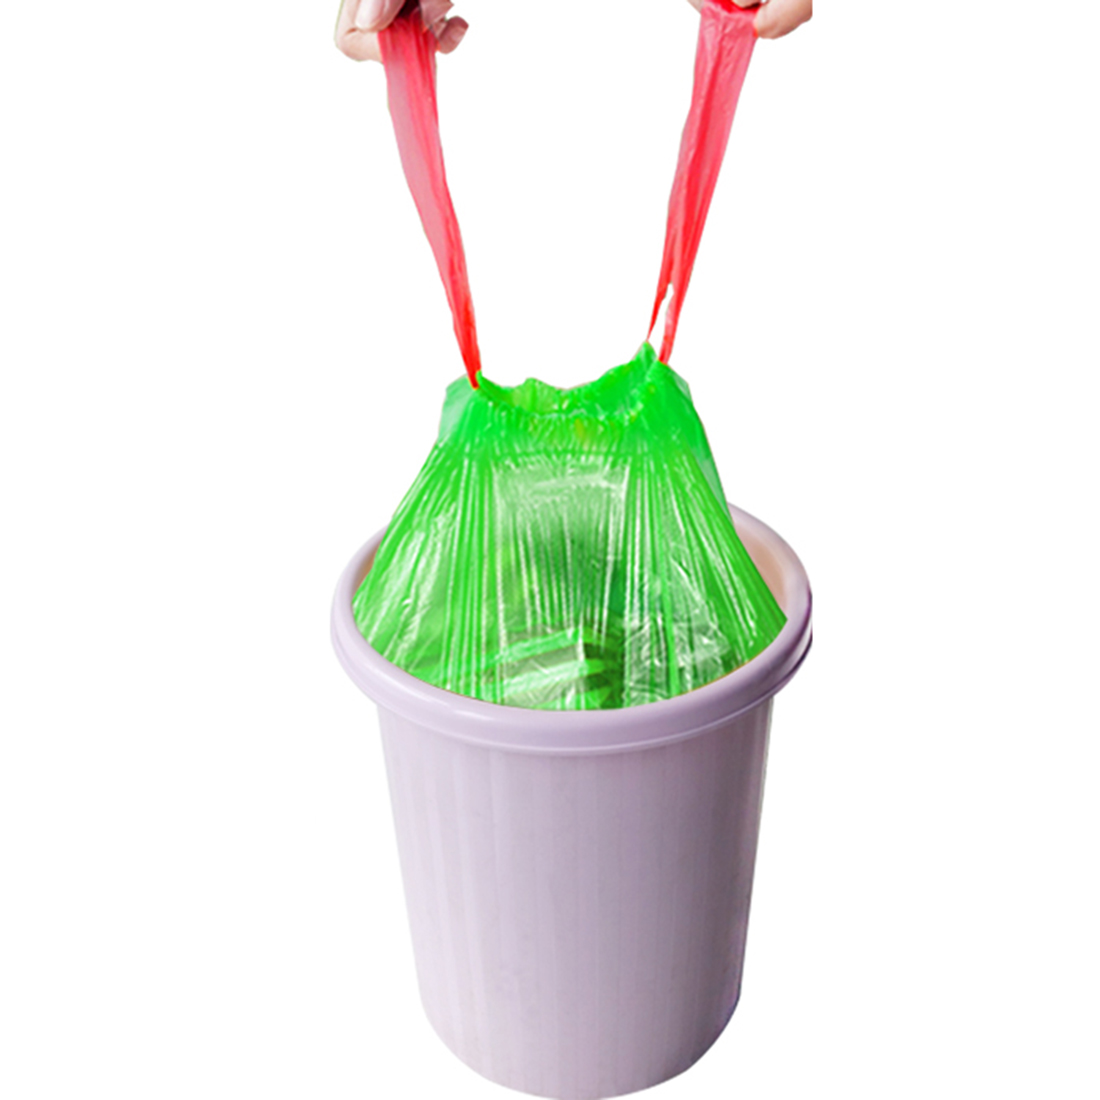 Stringing Thicken Kitchen Household Automatic Trash Can Bin Rubbish Garbage Plastic Bag - Green